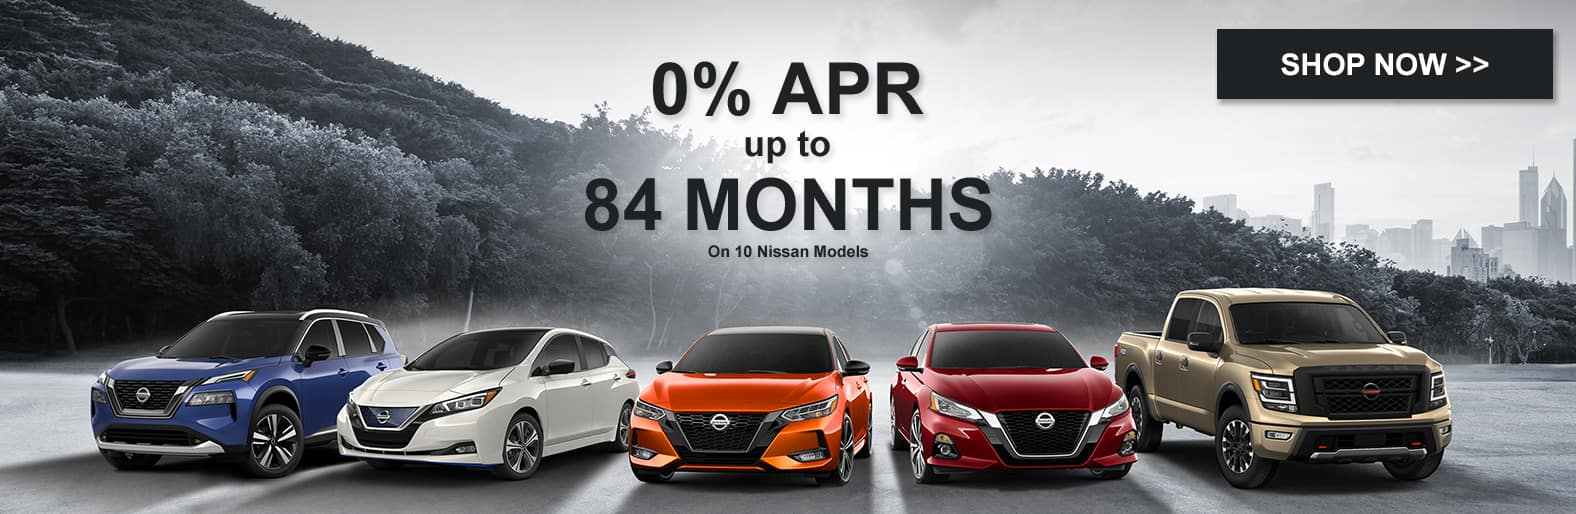 0% APR up to 84 Months on 10 Nissan Models.